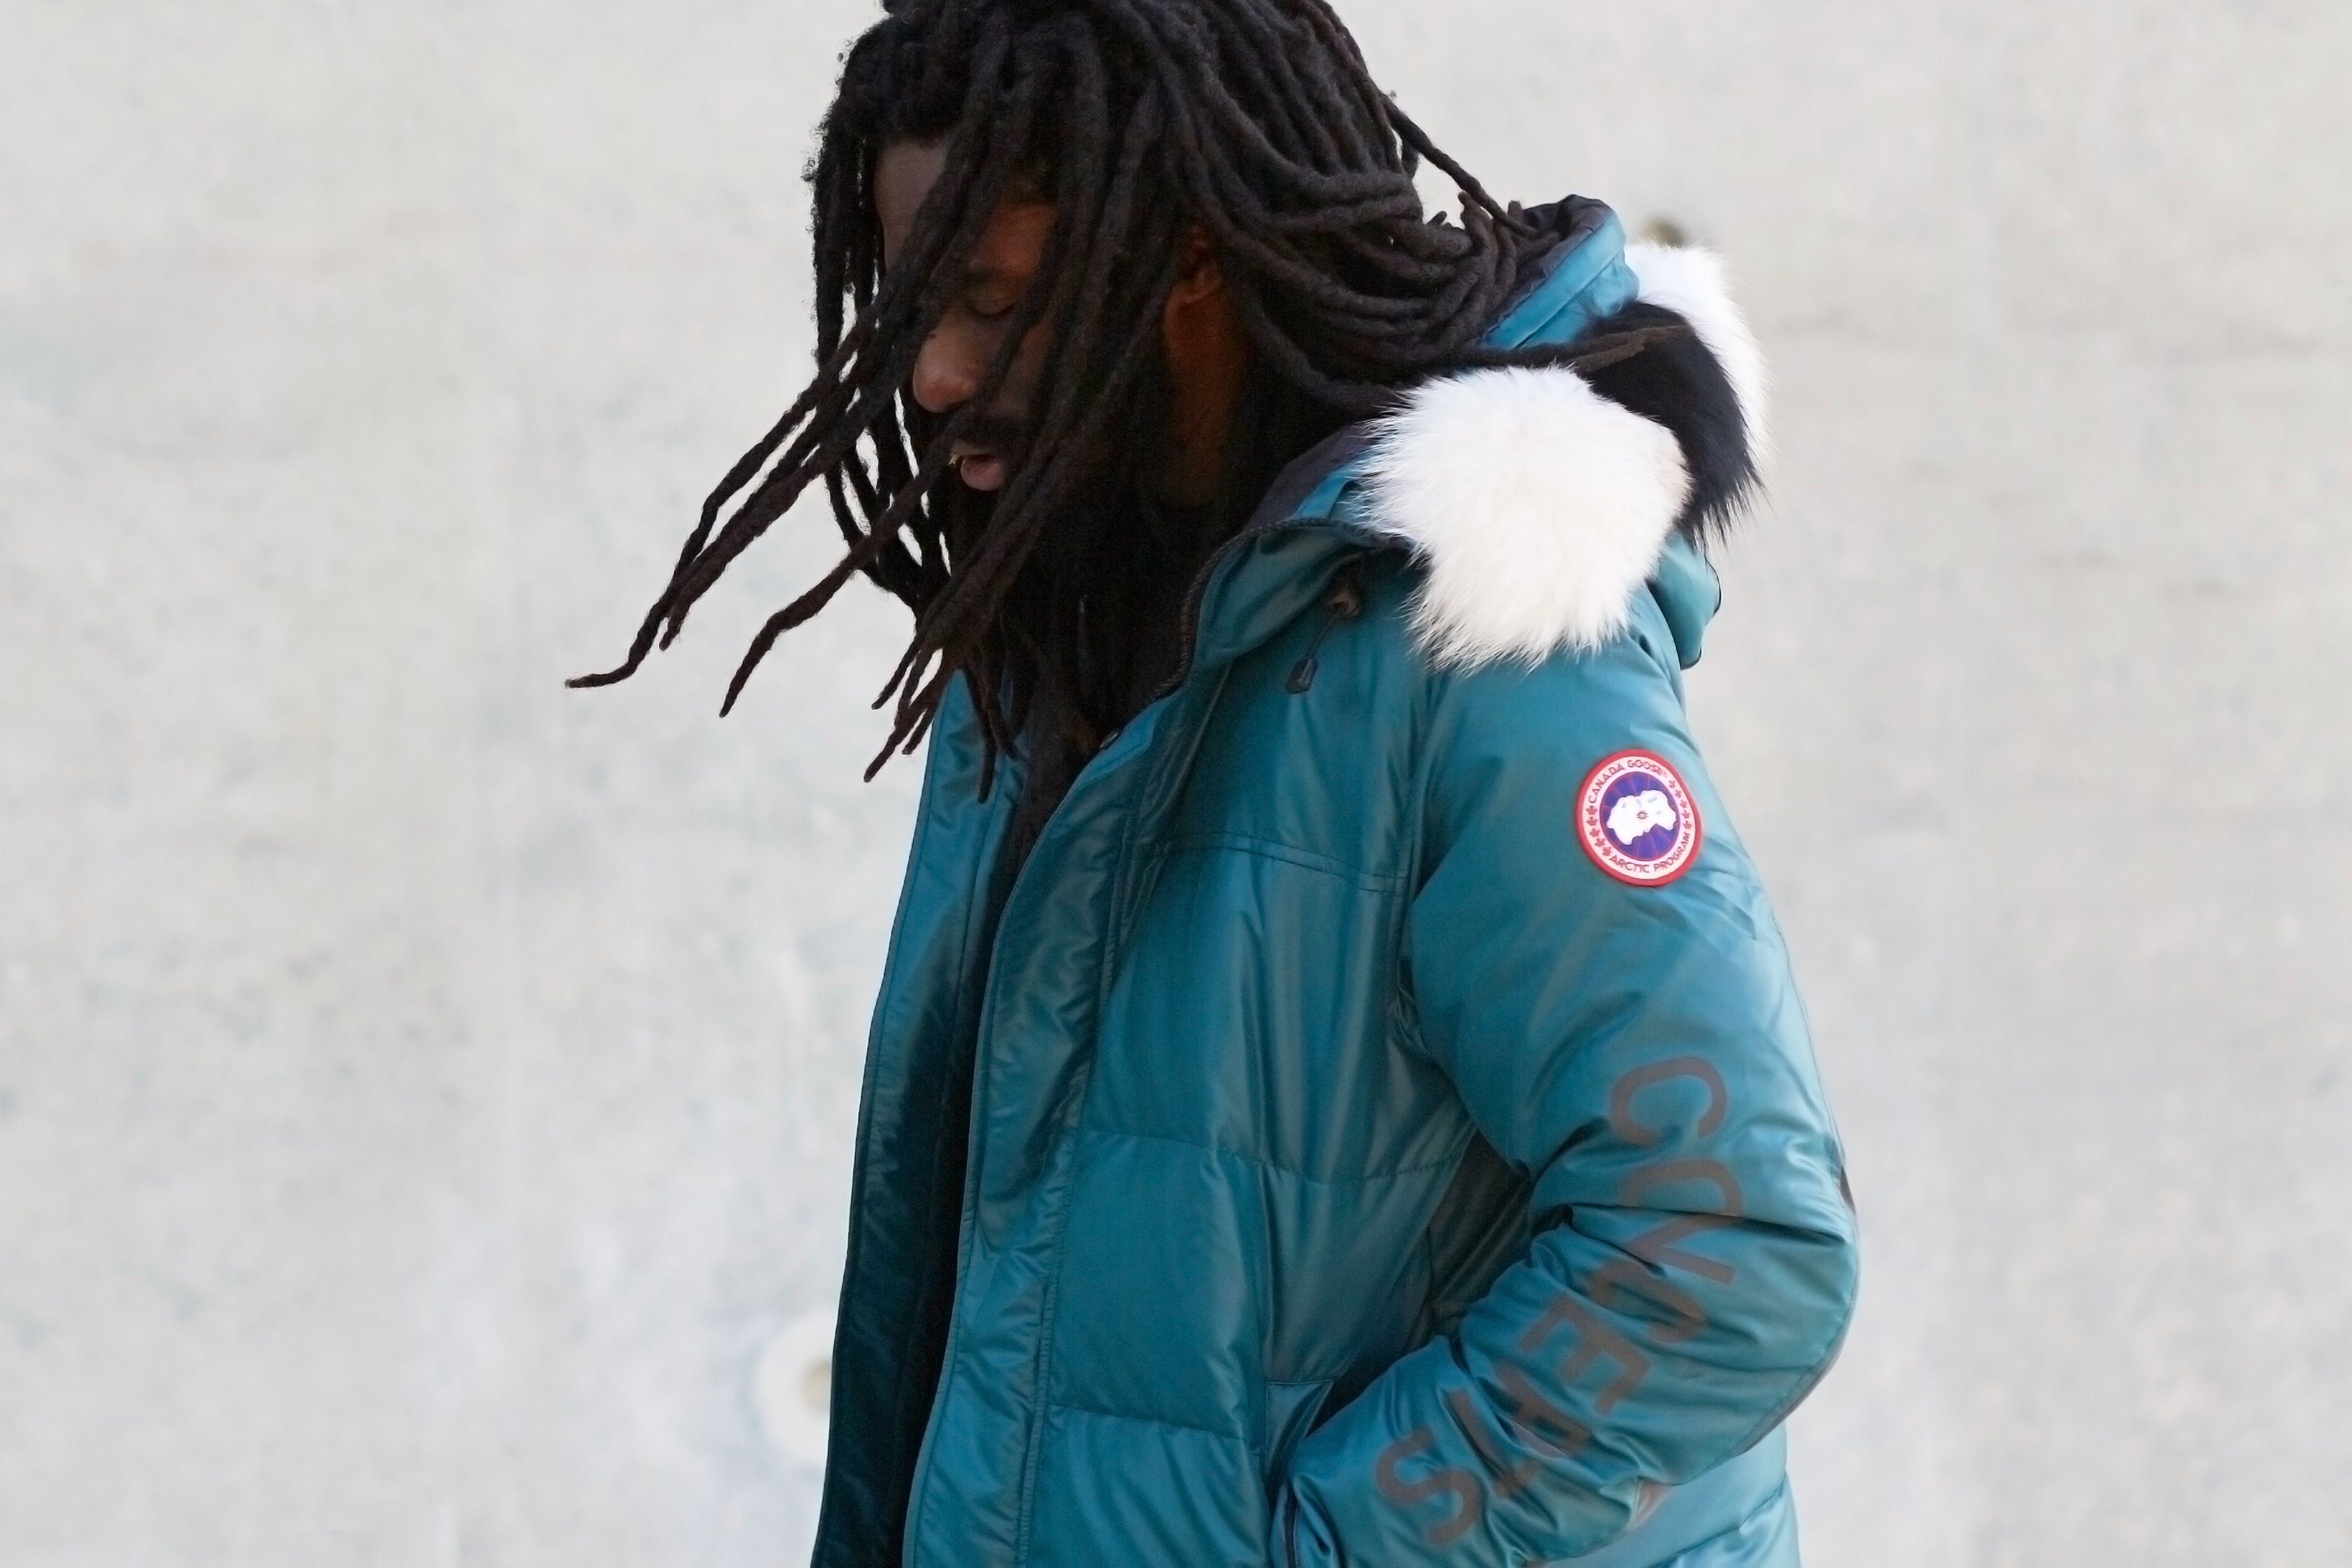 Canada Goose kensington parka outlet price - Concepts International | Concepts x Canada Goose Macmillan Jacket